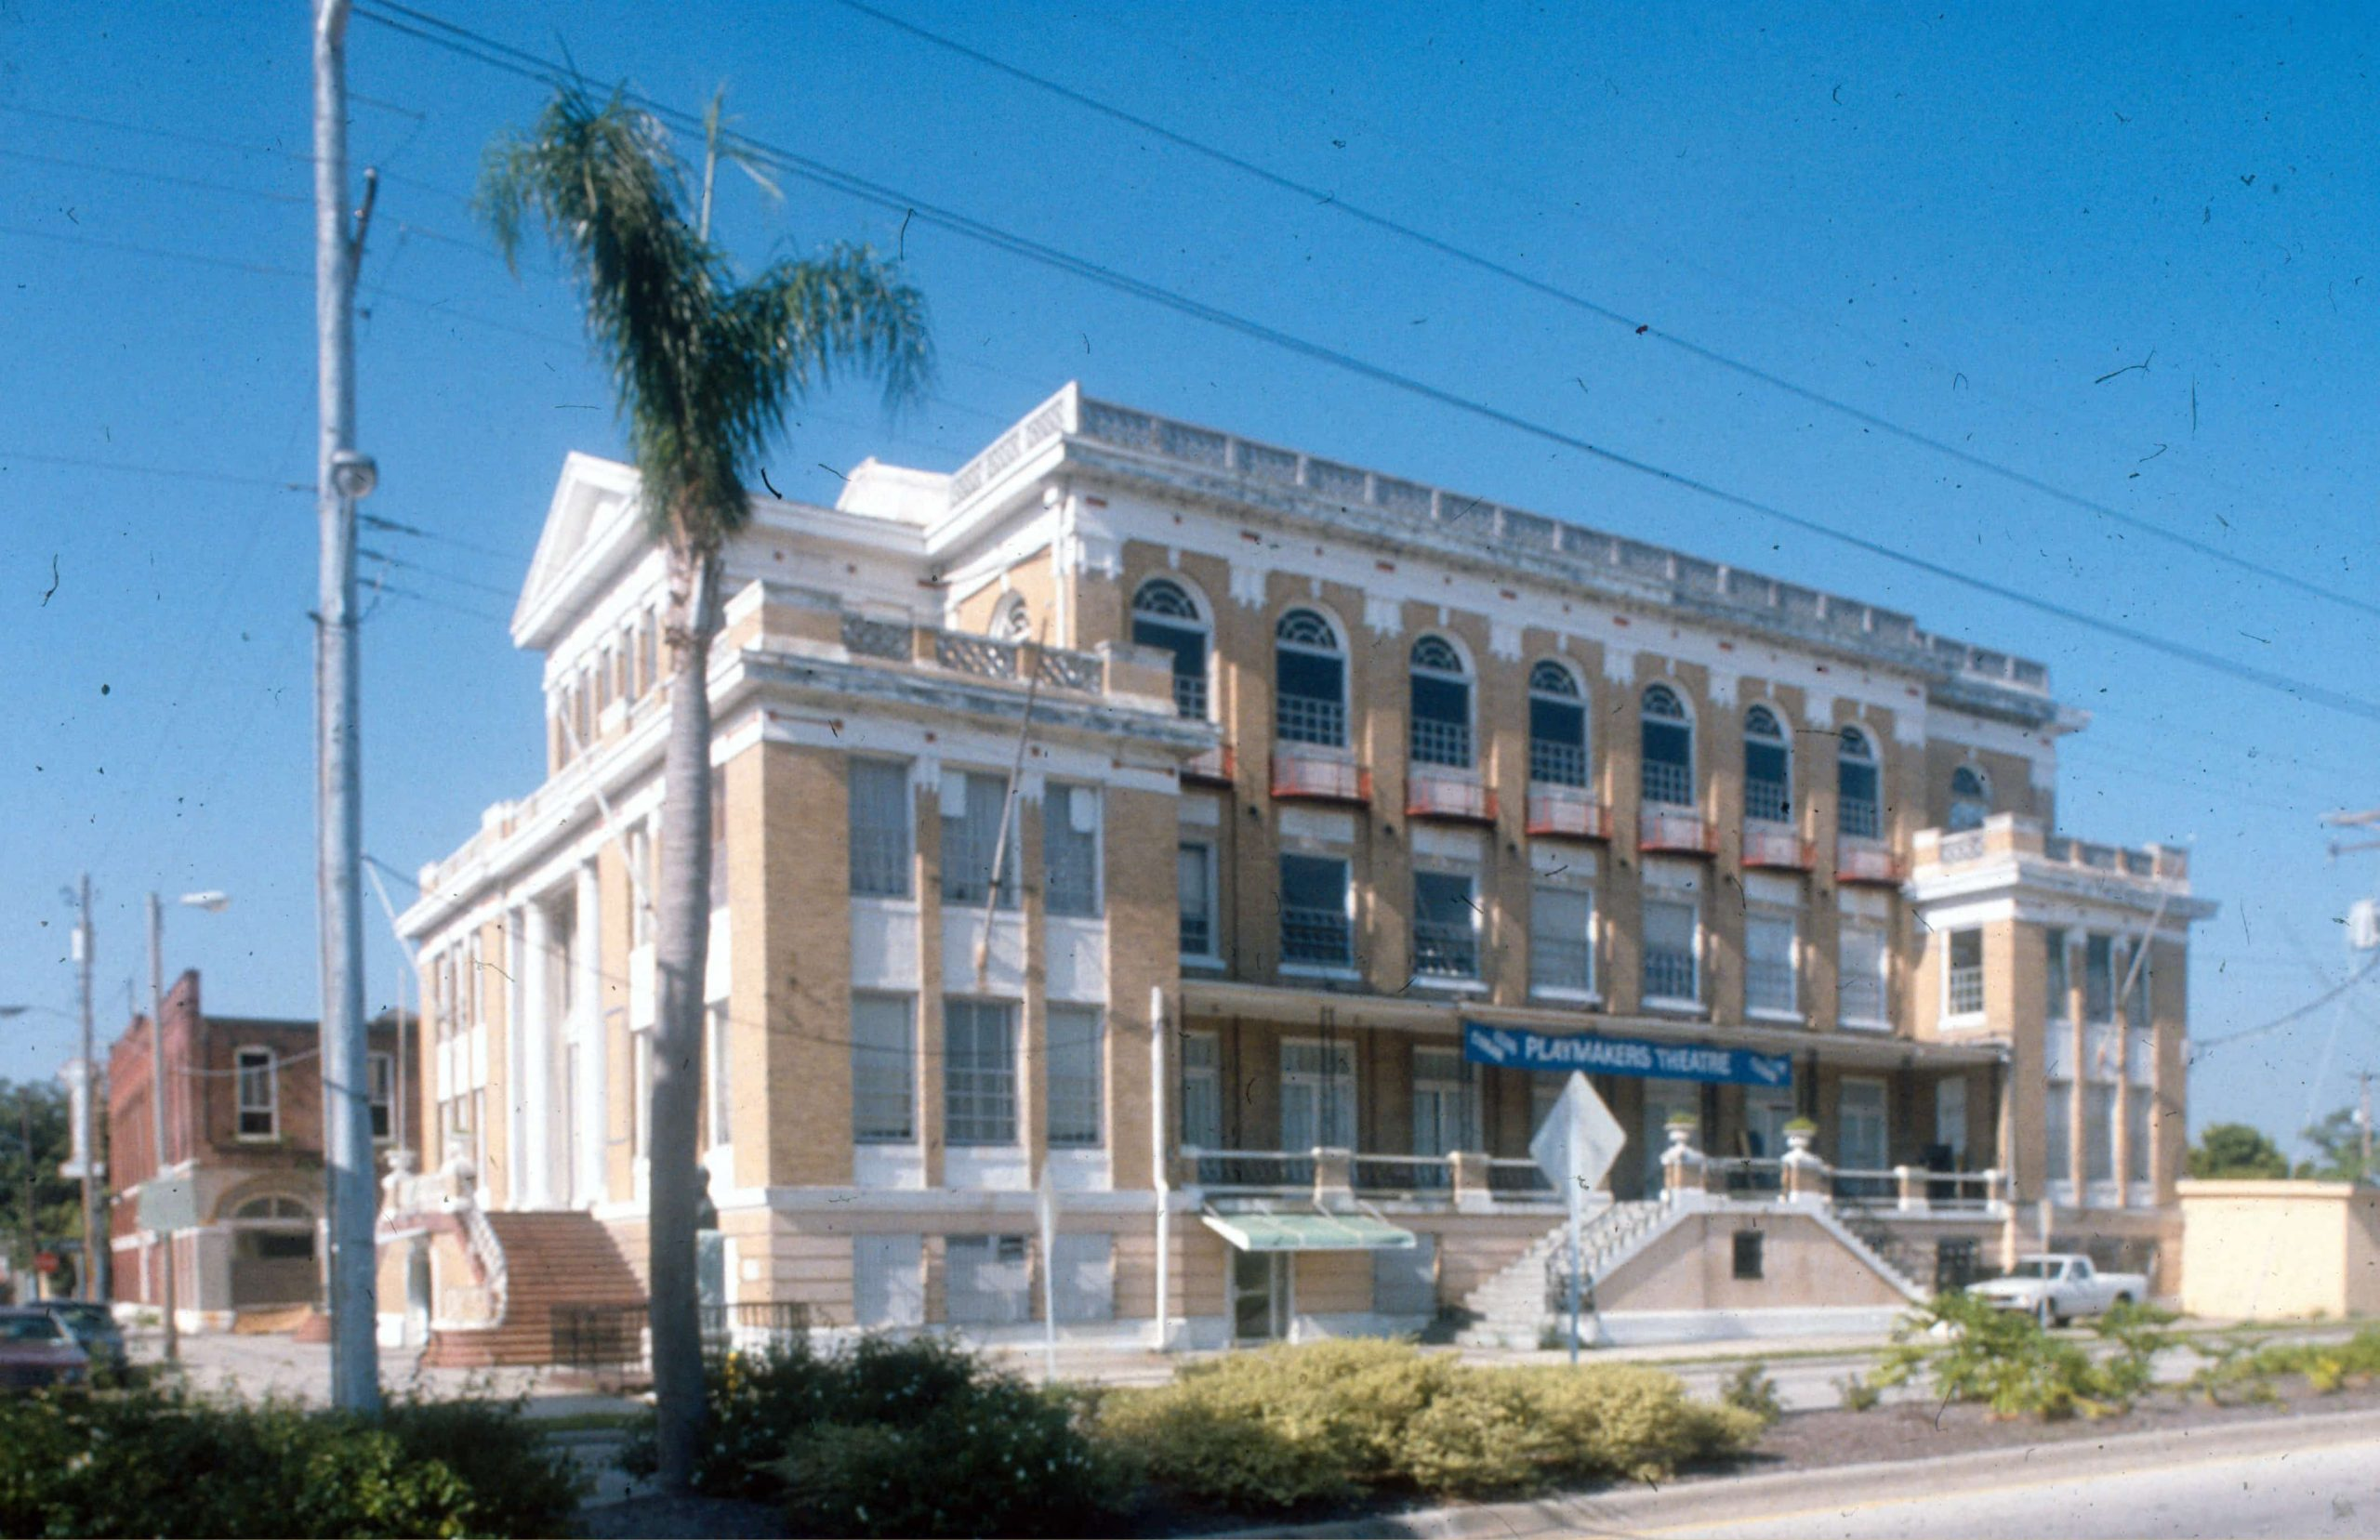 The Cuban Club can obtain financing for its restoration.  The Jackson House and Italian Club may not do this